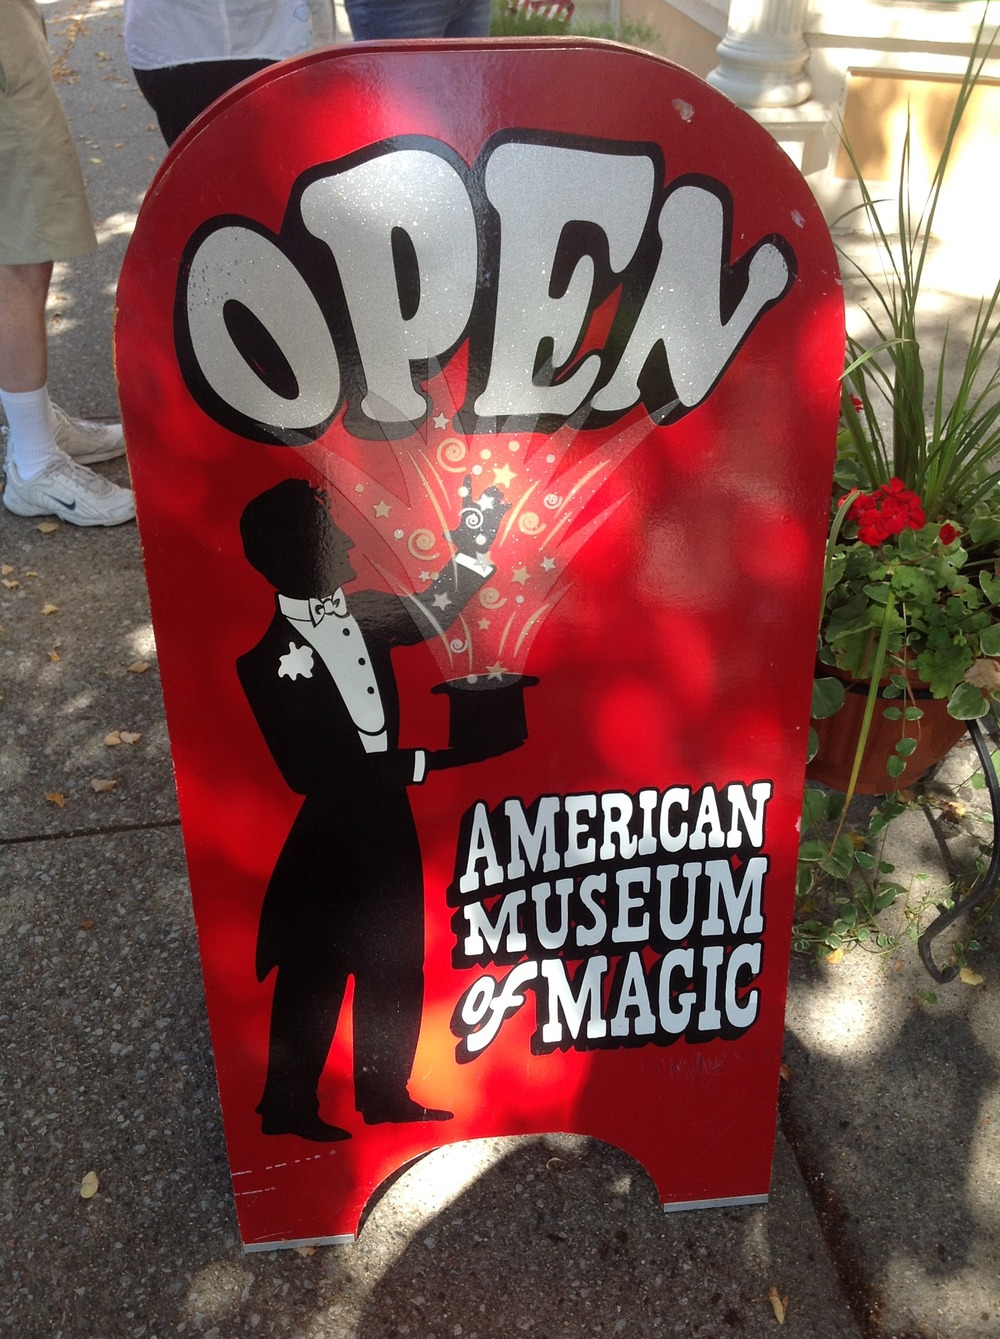 Photos of the American Museum of Magic - Marshall, Michigan